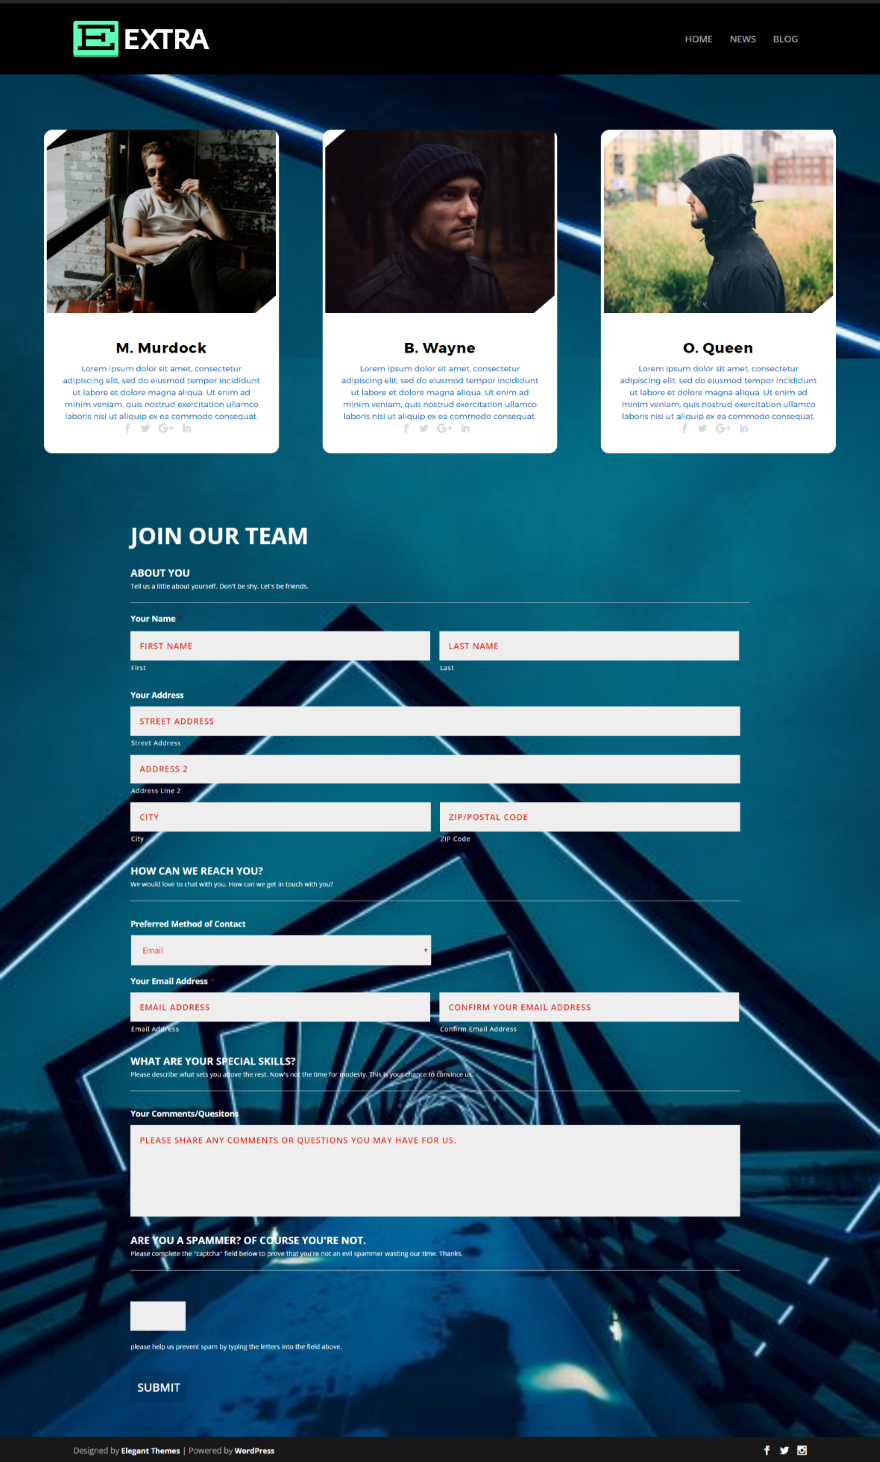 Designed by elegant themes powered by wordpress - Extra Theme With Advanced Contact Form In Person Module Layout